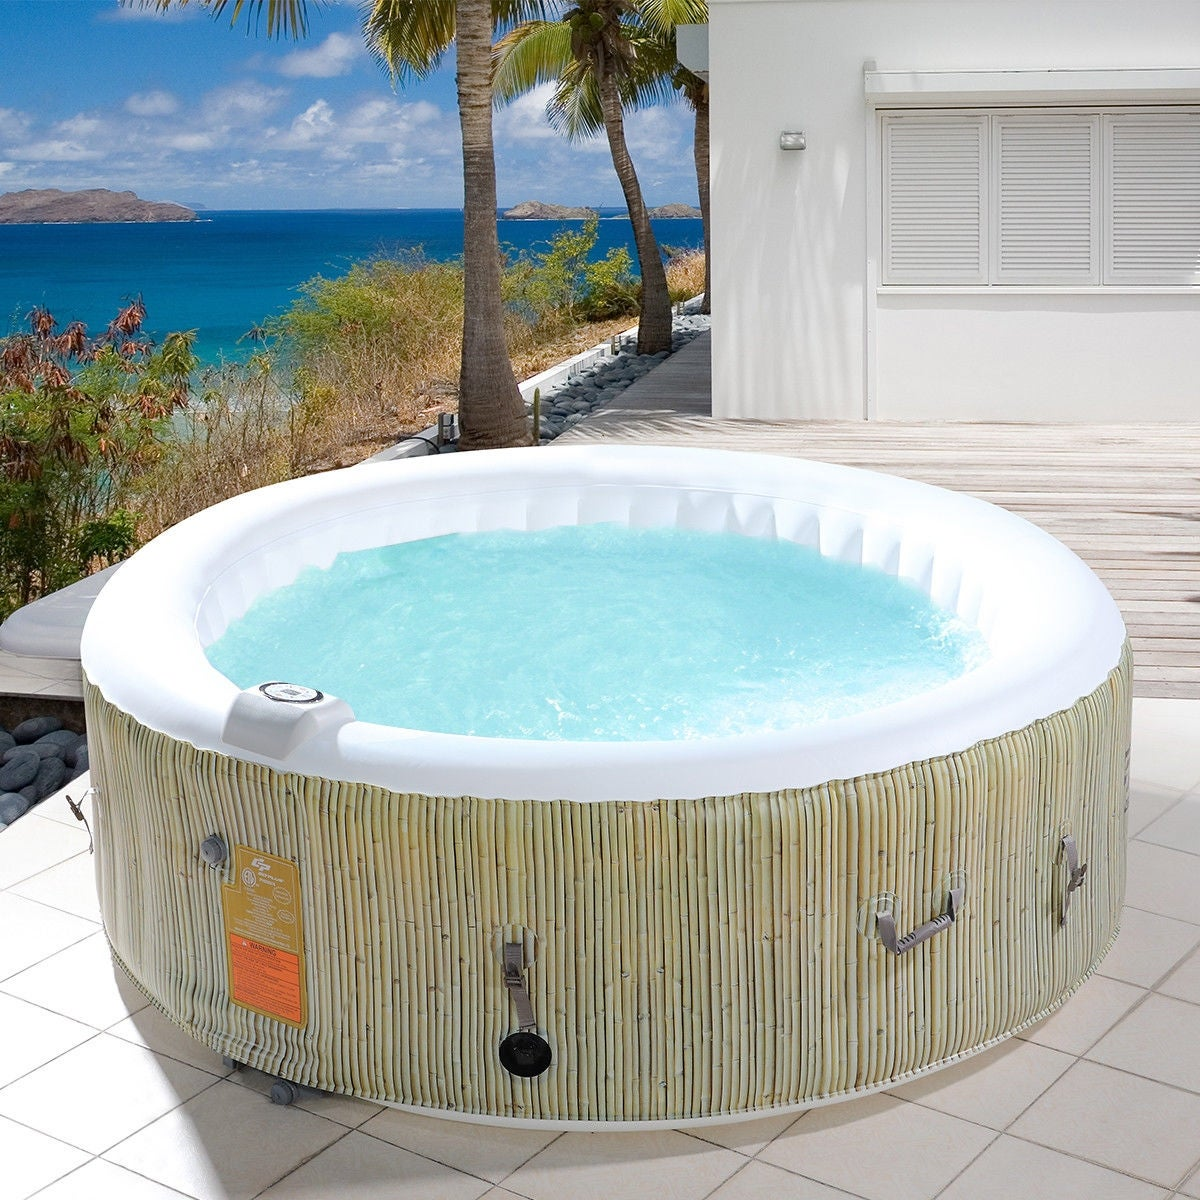 Shop Goplus 4-6 Person Inflatable Hot Tub Outdoor Jets Portable ...